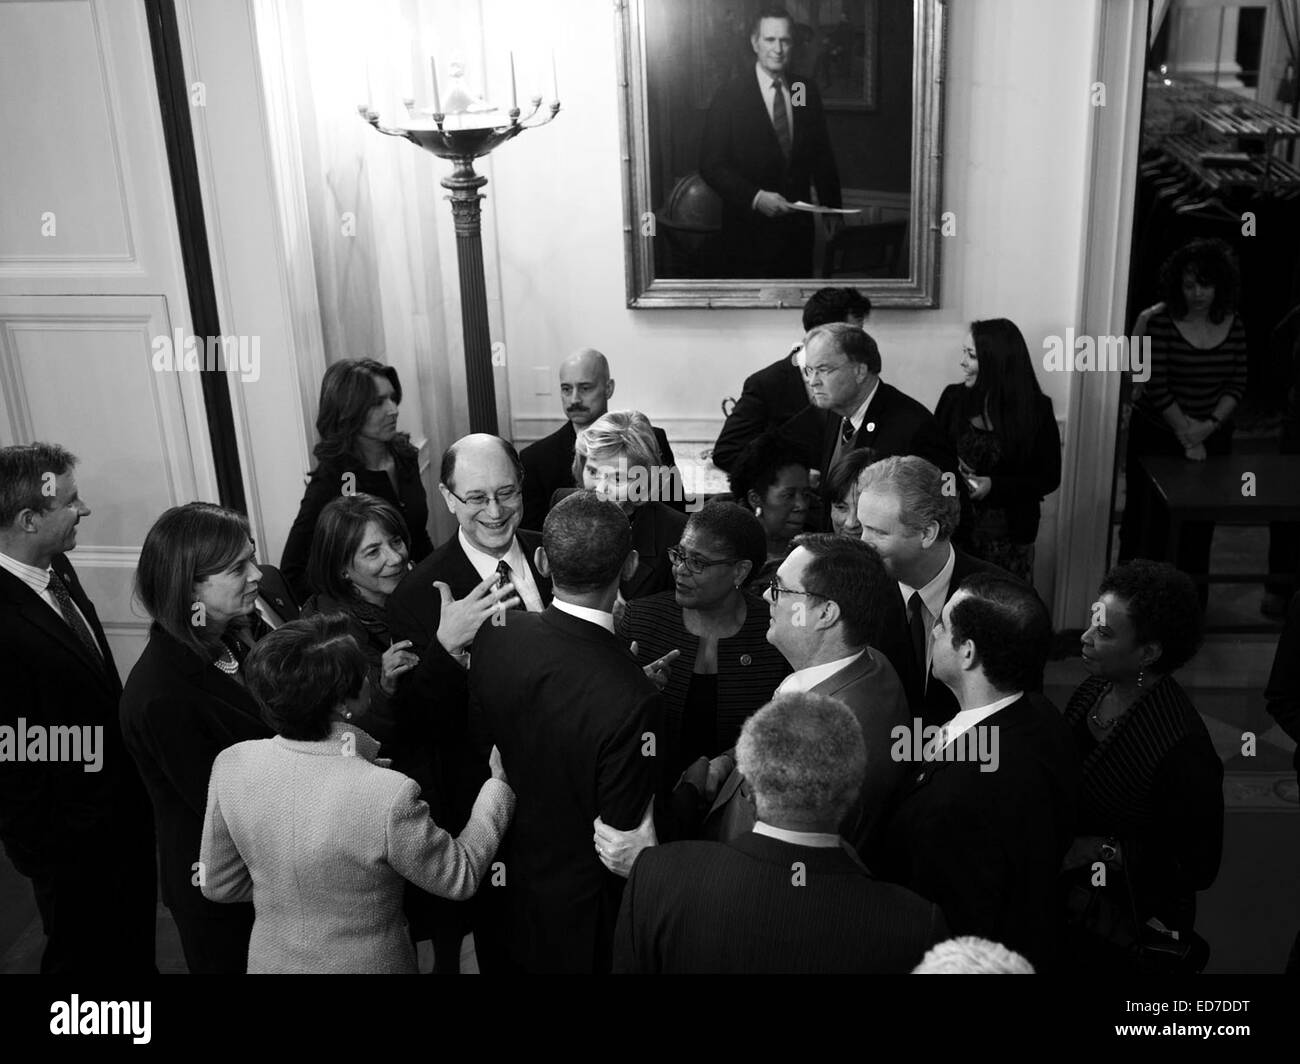 Members of Congress surround US President Barack Obama following a meeting with the House Democratic Caucus in the - Stock Image